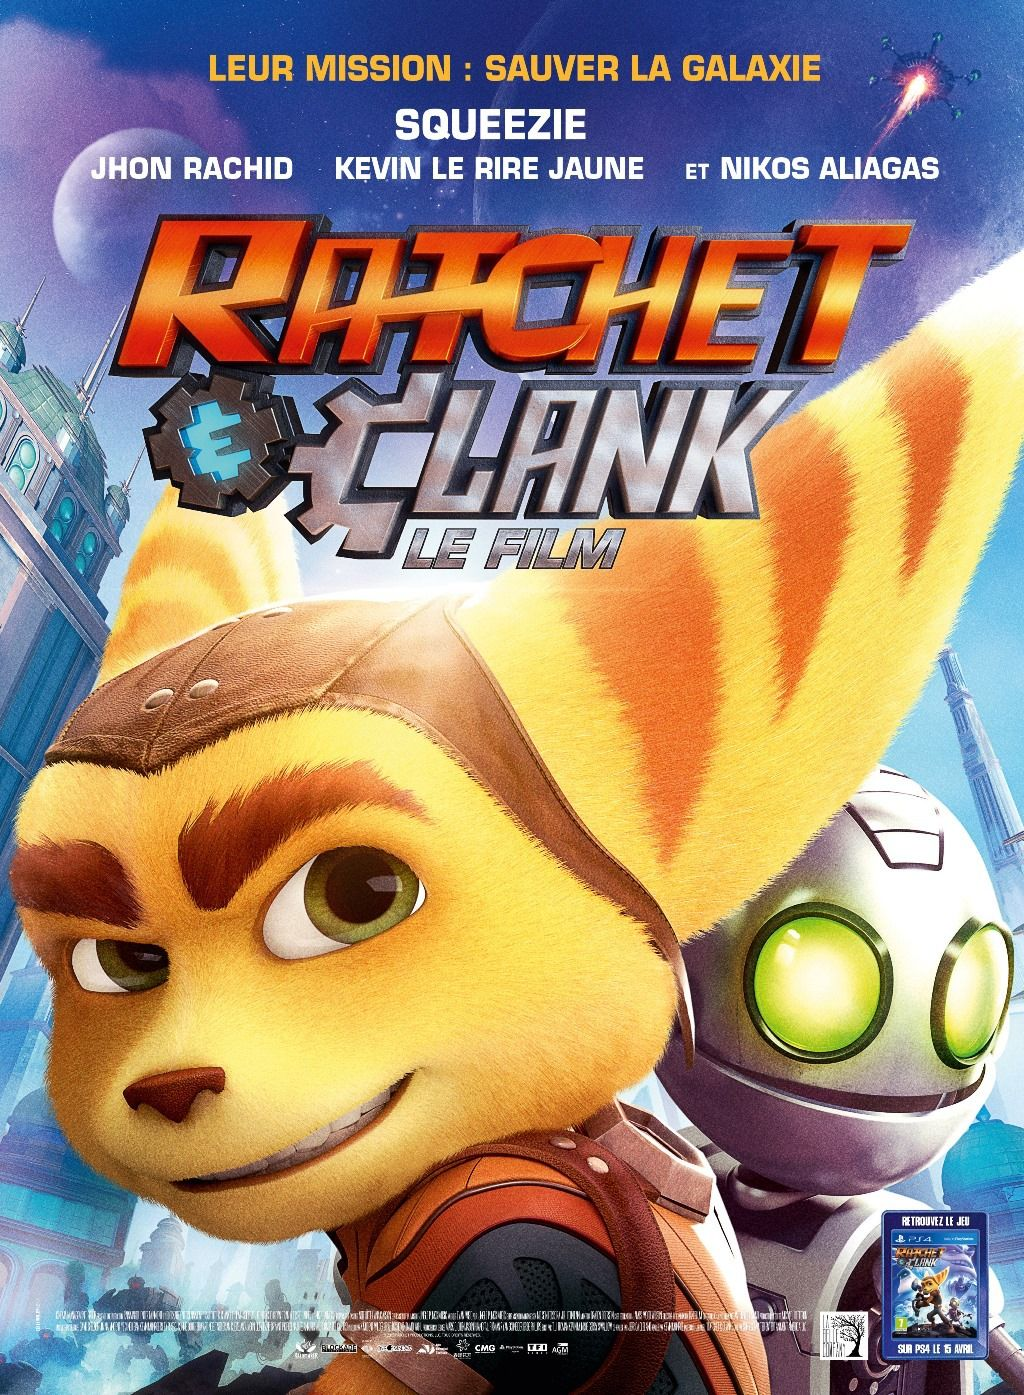 Ratchet Clank Trailer Images And Posters Ratchet Animated Movie Posters Jak Daxter